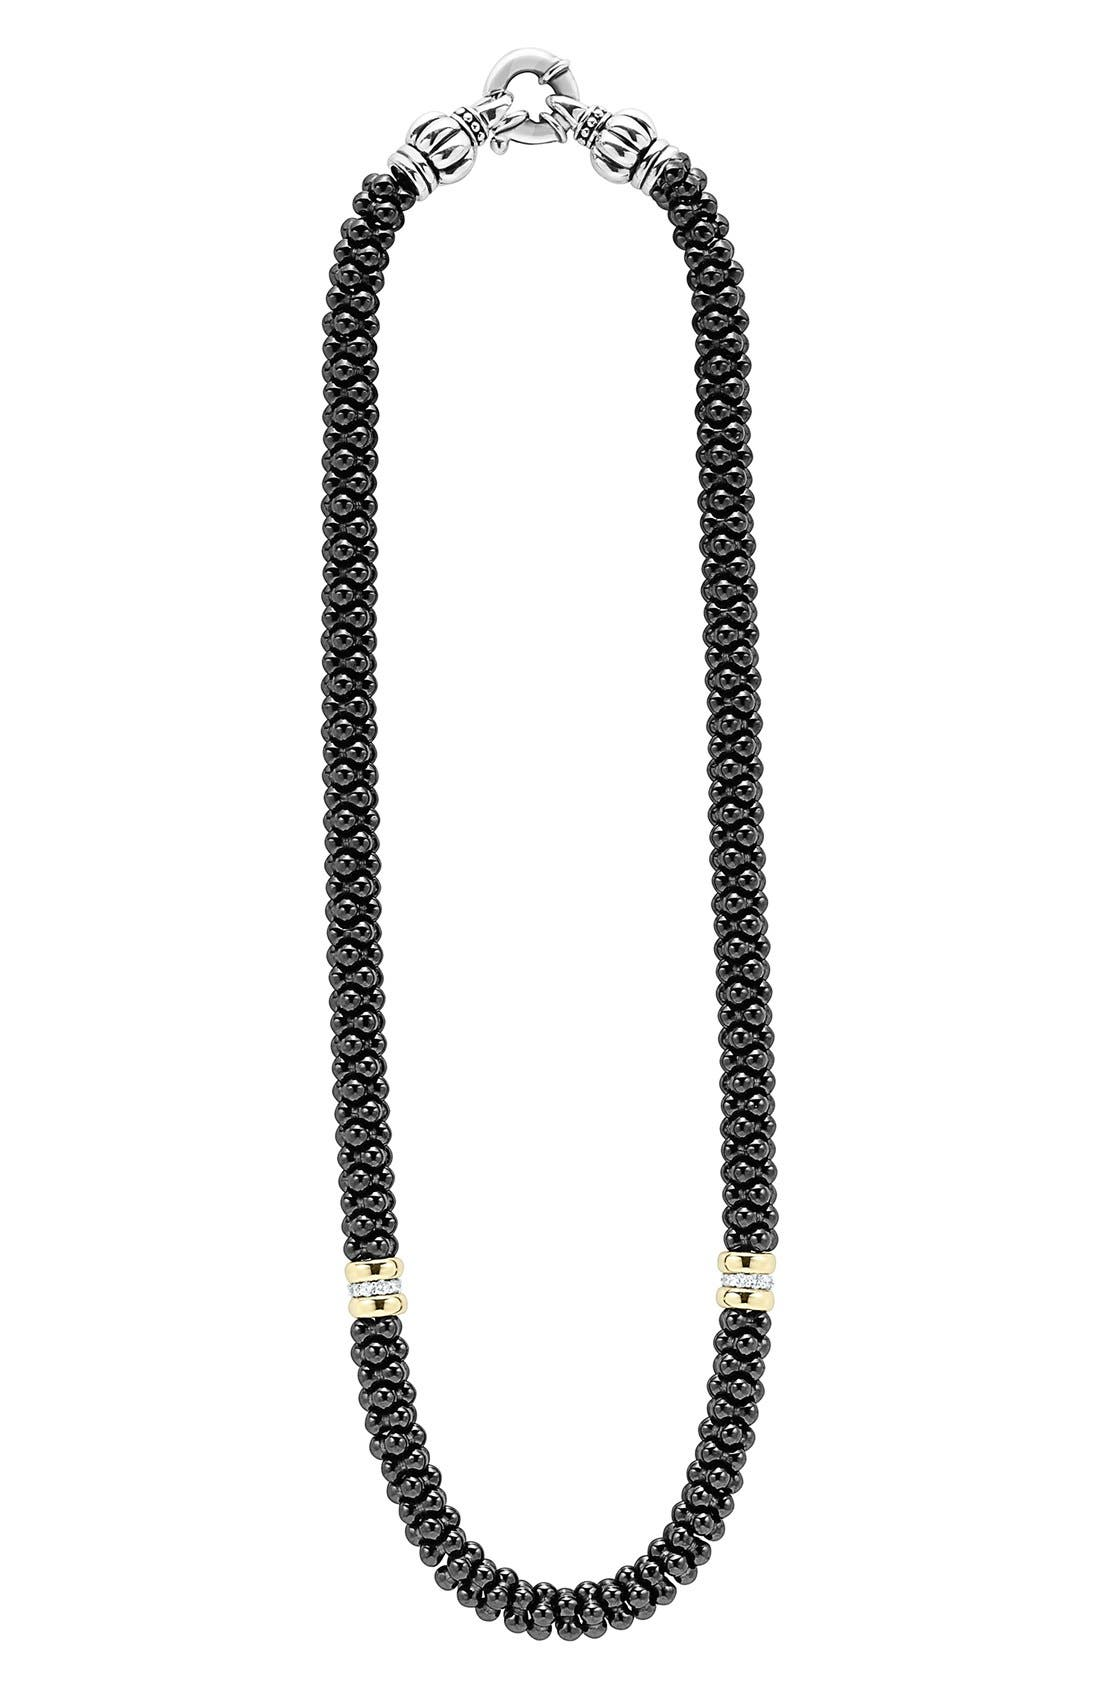 LAGOS 'Black Caviar' 7mm Beaded Diamond Station Necklace